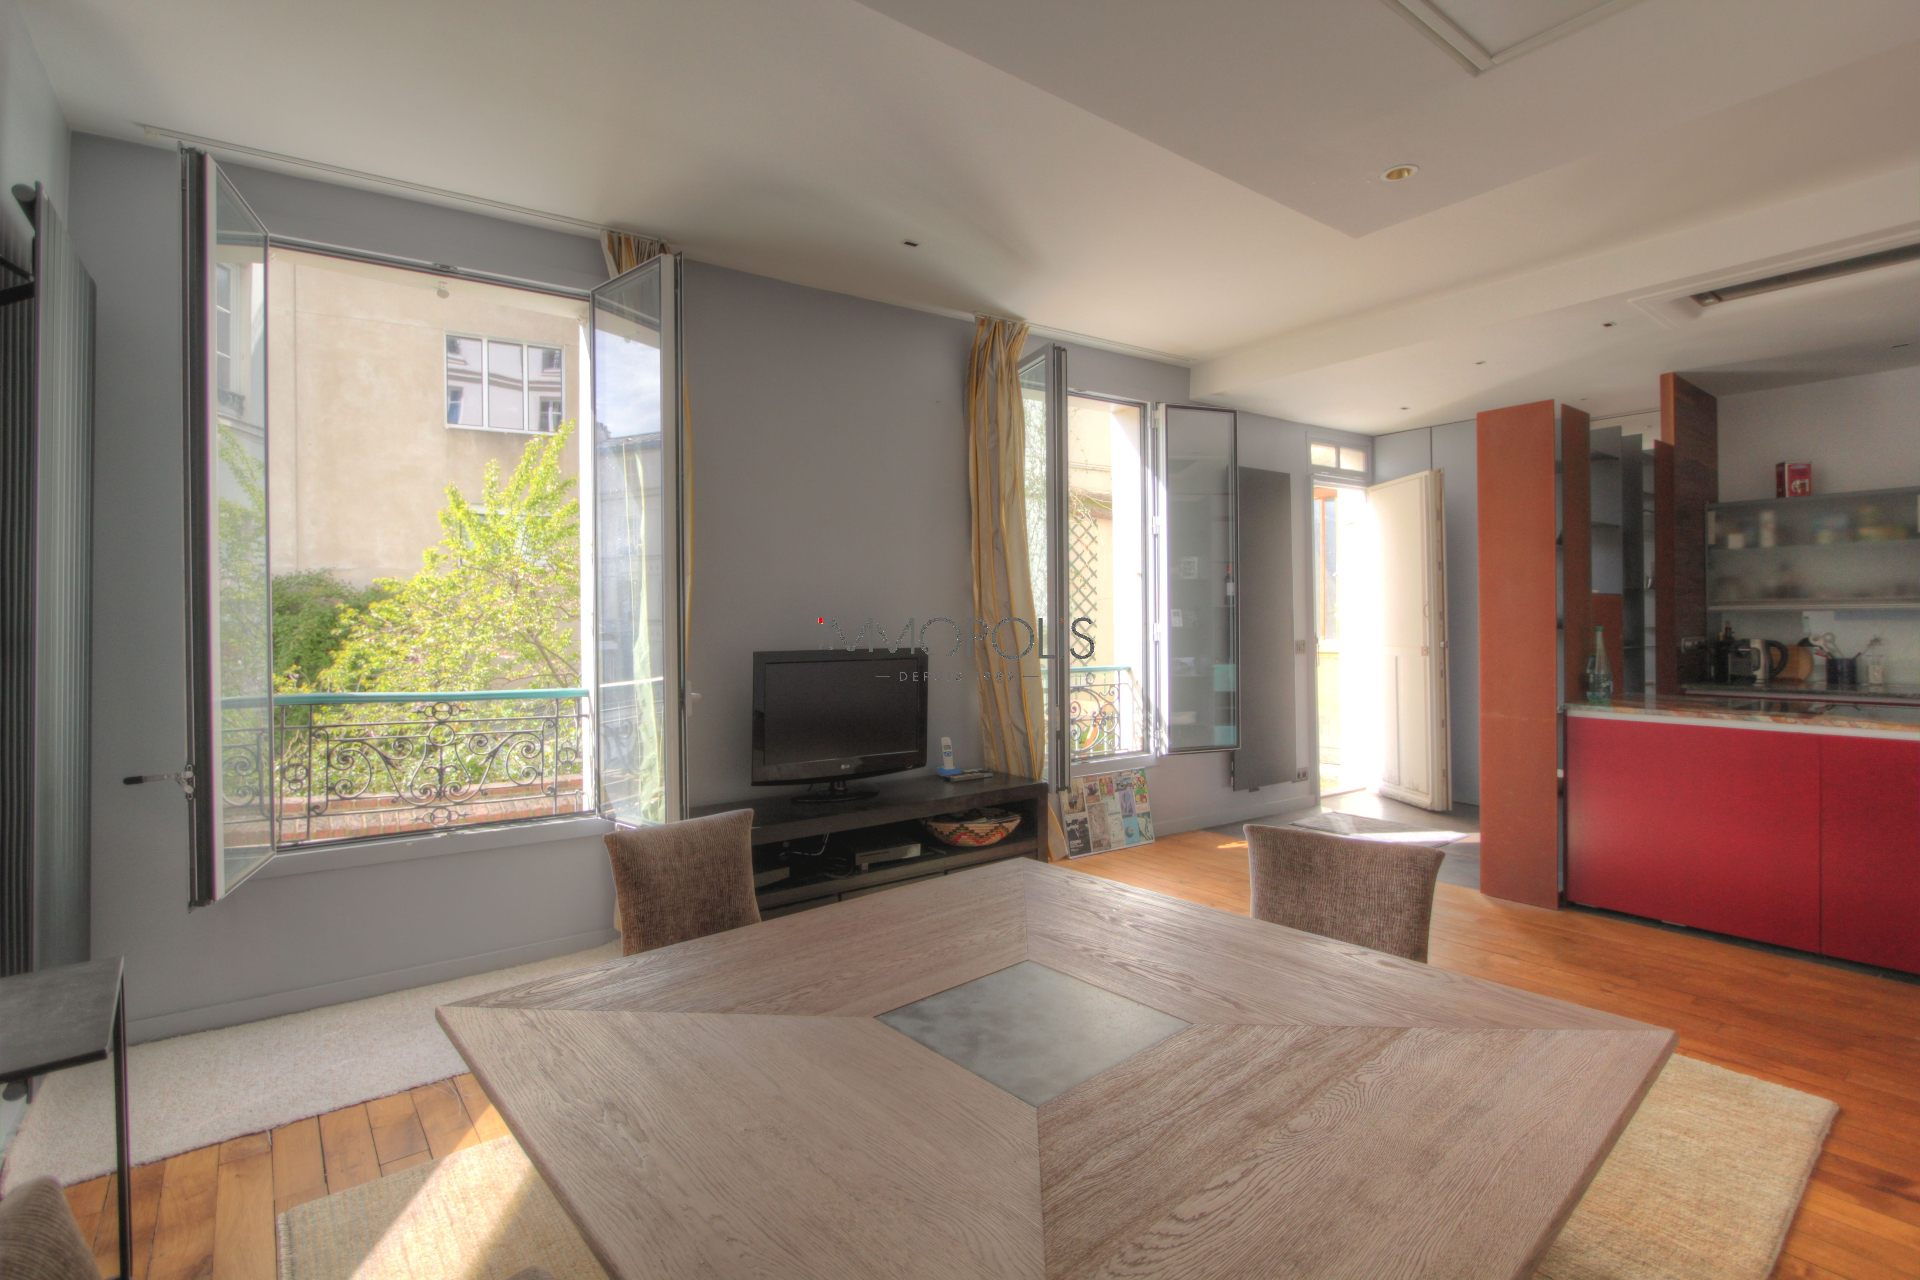 Exceptional in Montmartre (rue Gabrielle): refurbished open space, sumptuous services, with balcony and open view! 4